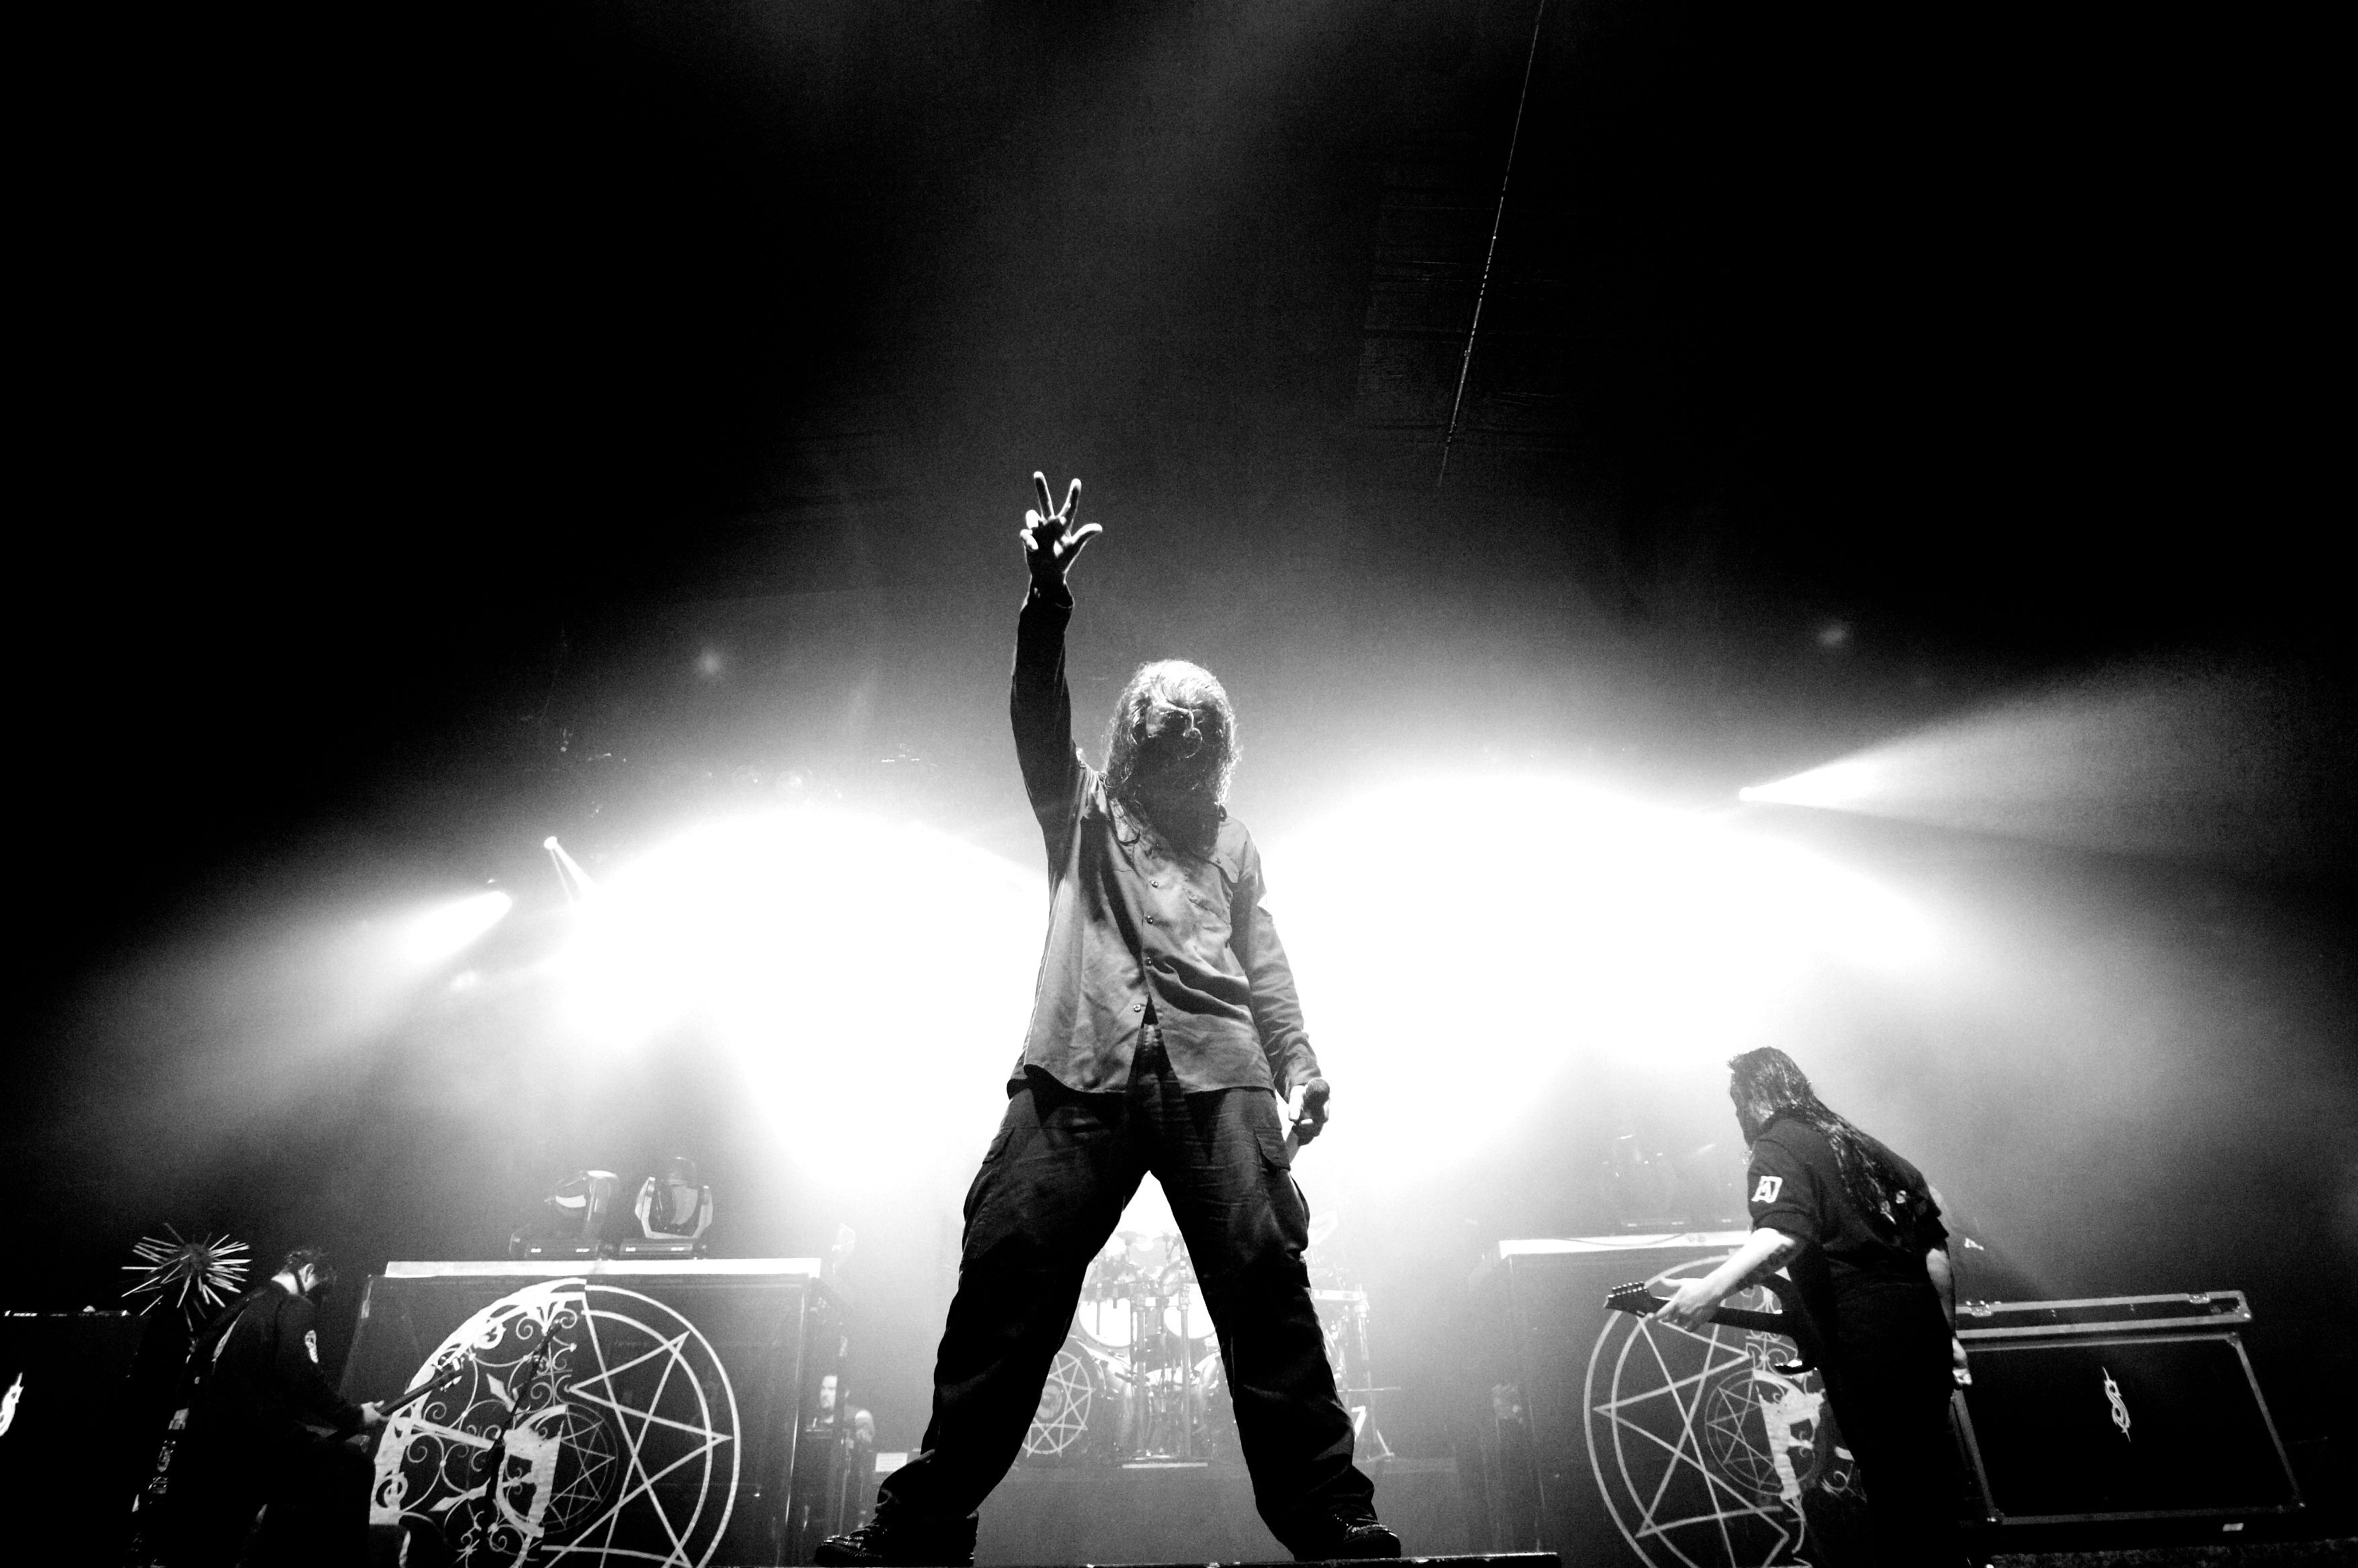 slipknot | music | pinterest | slipknot, music and concert